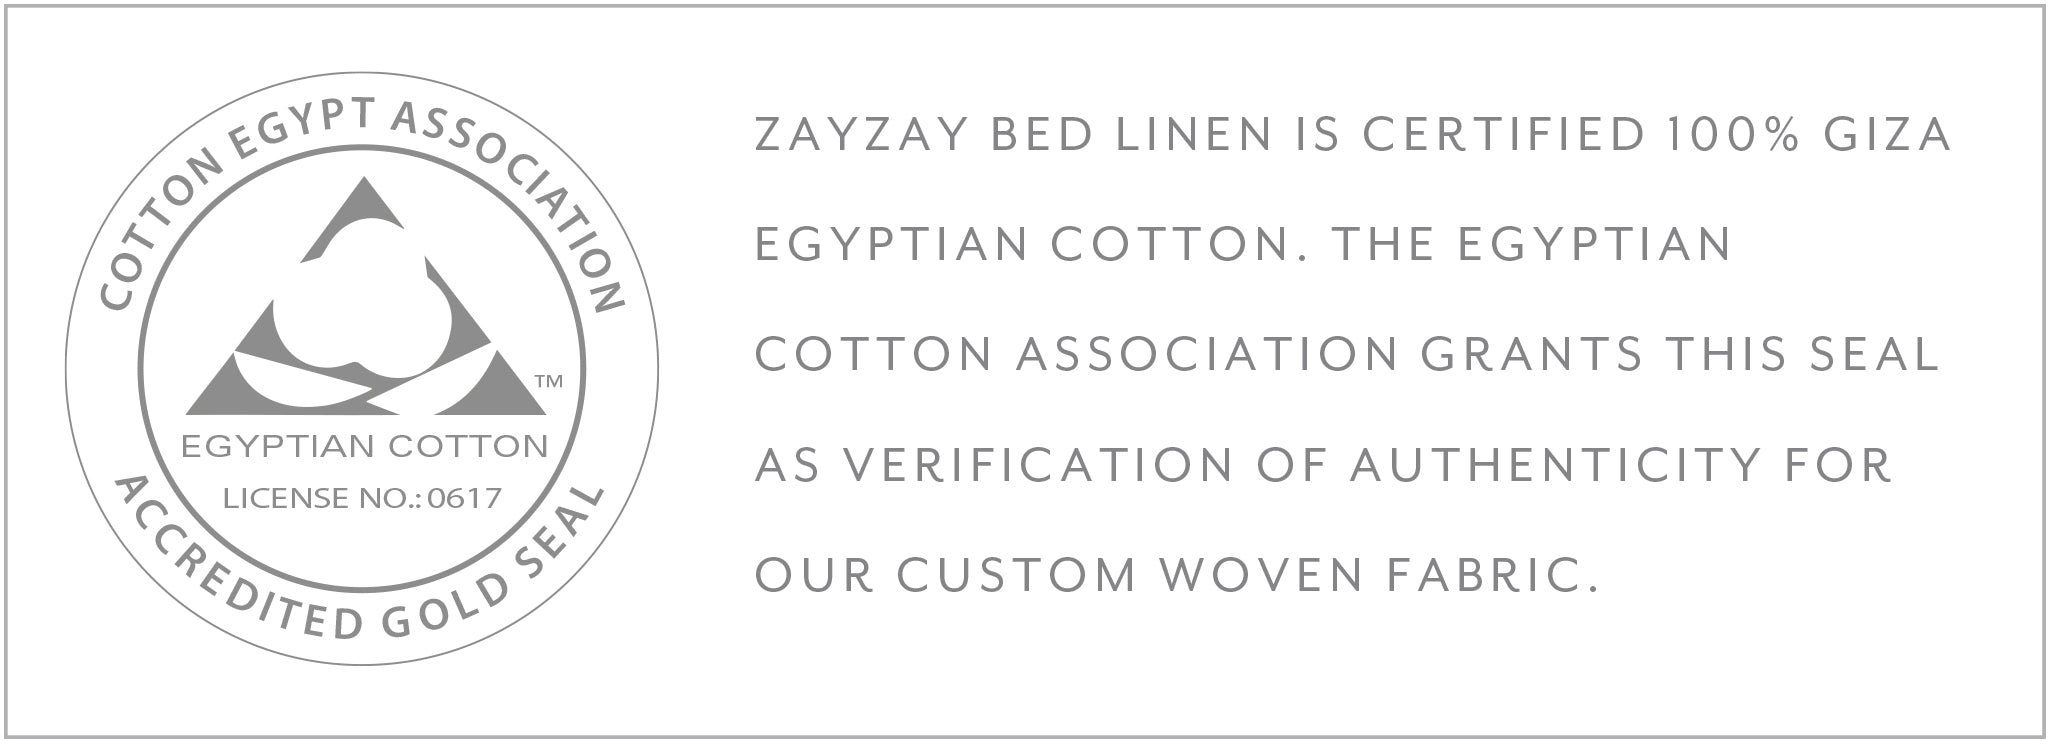 Gold seal certification 100% Giza Egyptian cotton